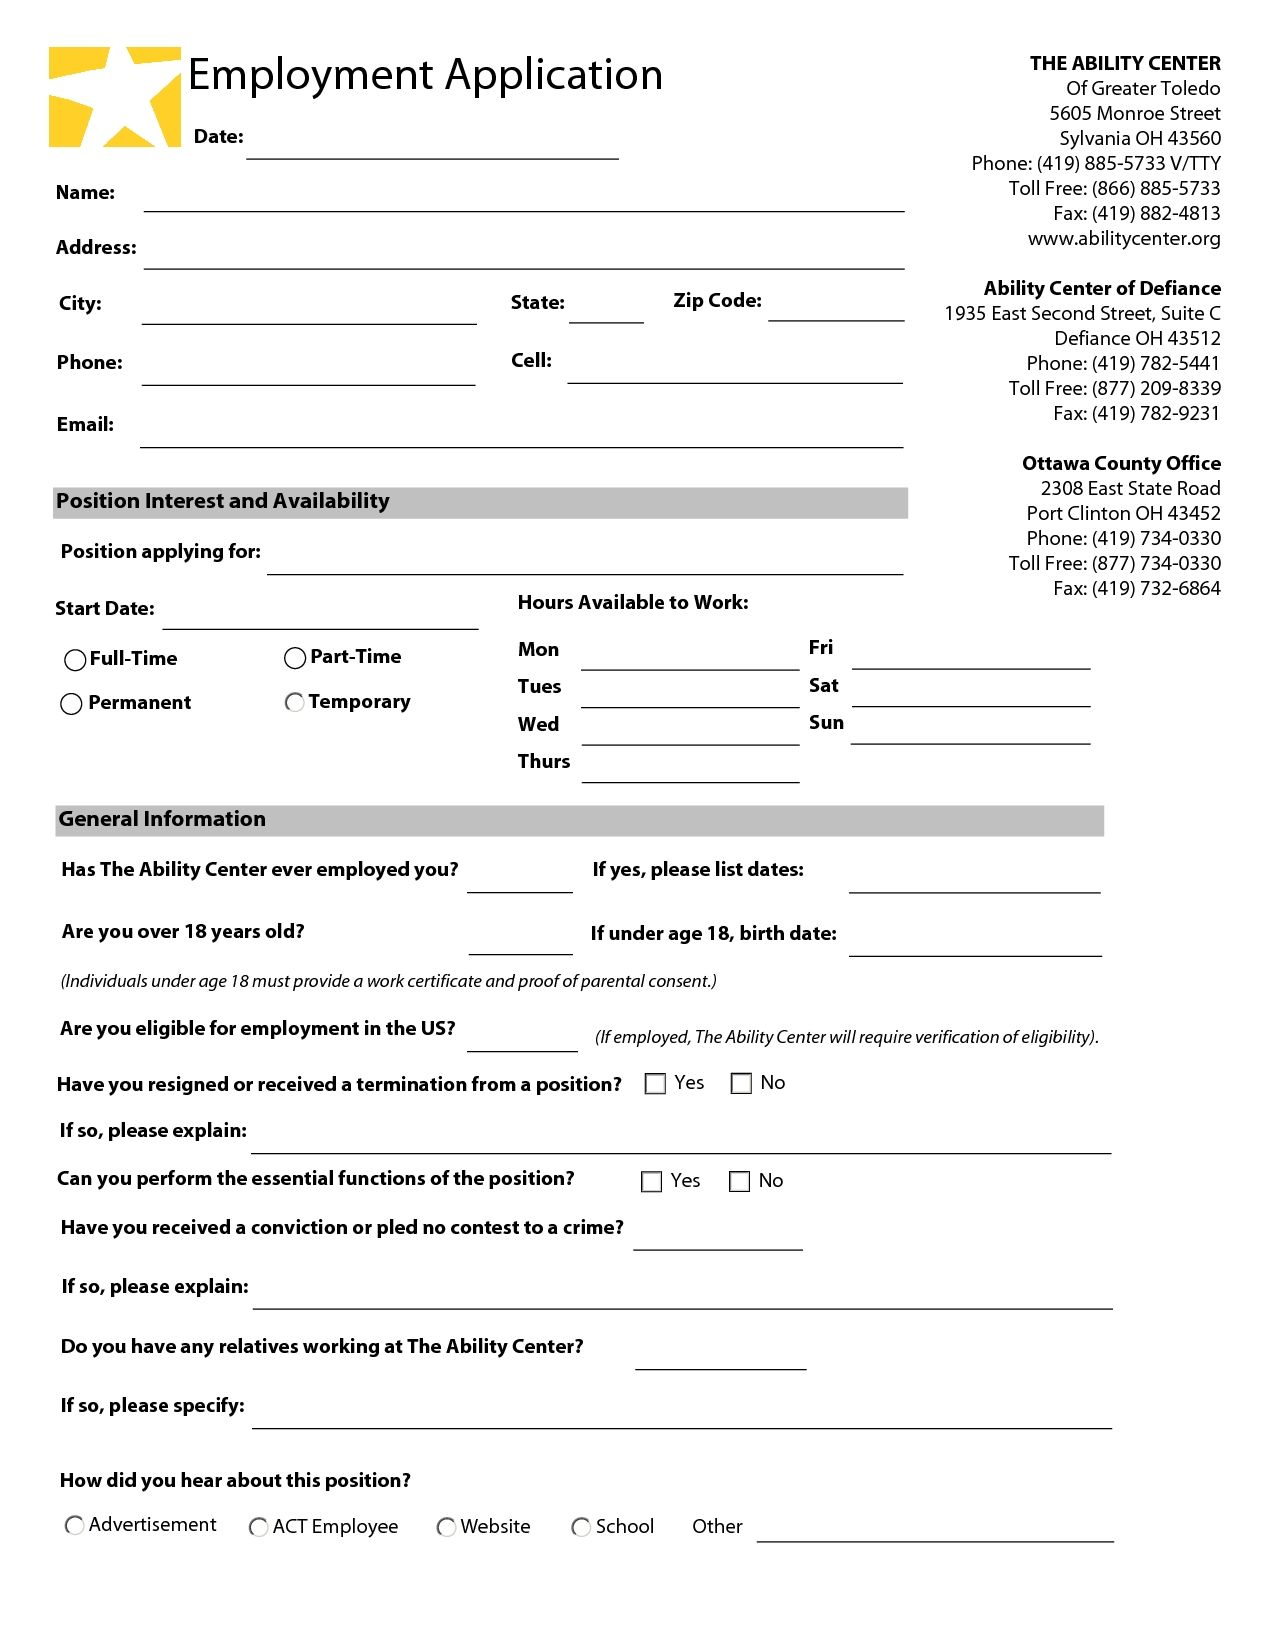 Employment Application Template Best Business Template Free Job